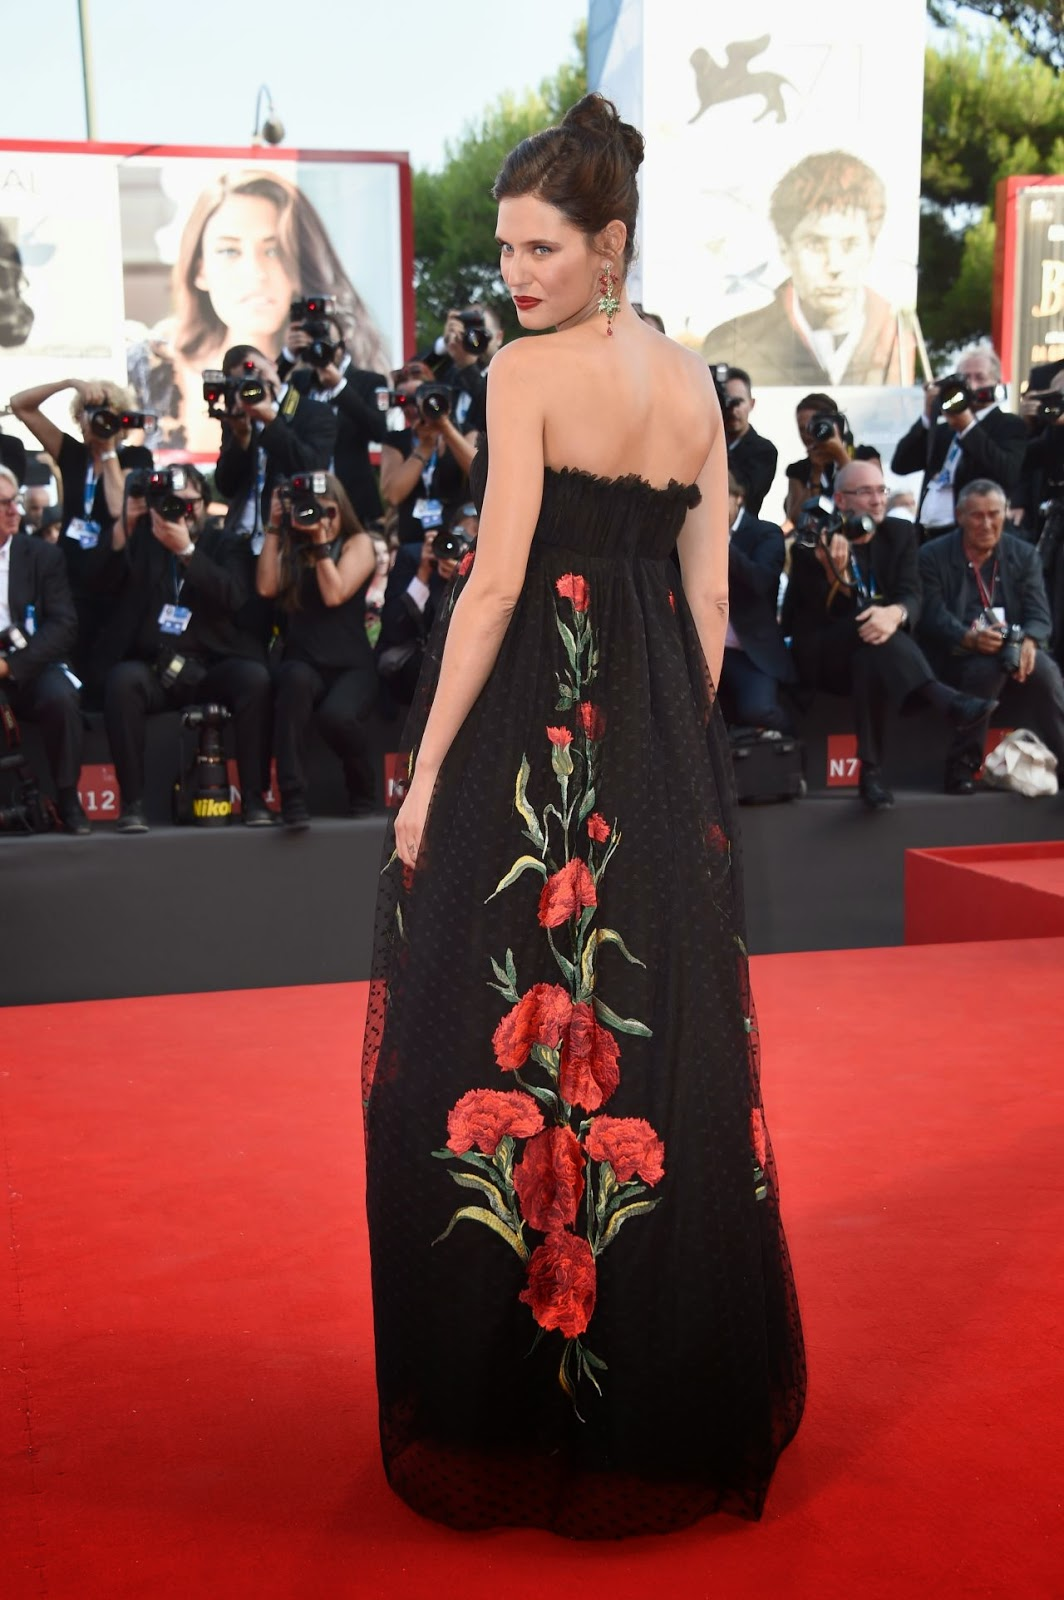 Bianca Balti arrives in Dolce & Gabbana for the 'Birdman' Venice Film Festival Premiere and Opening Ceremony